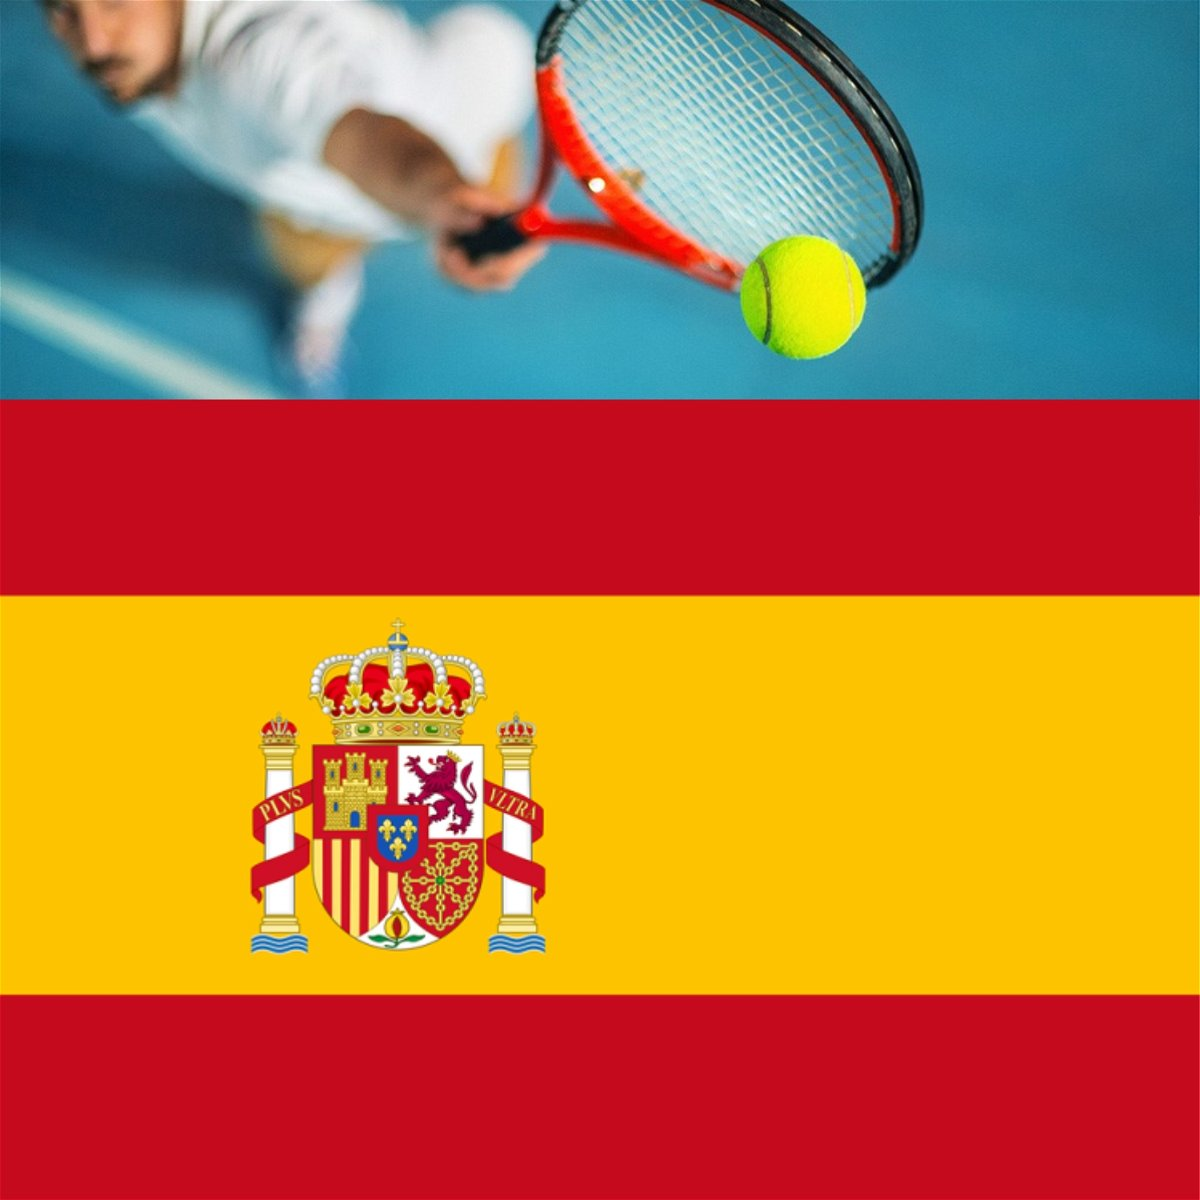 Big News For Tennis Fans In Spain Amidst The Coronavirus Threat